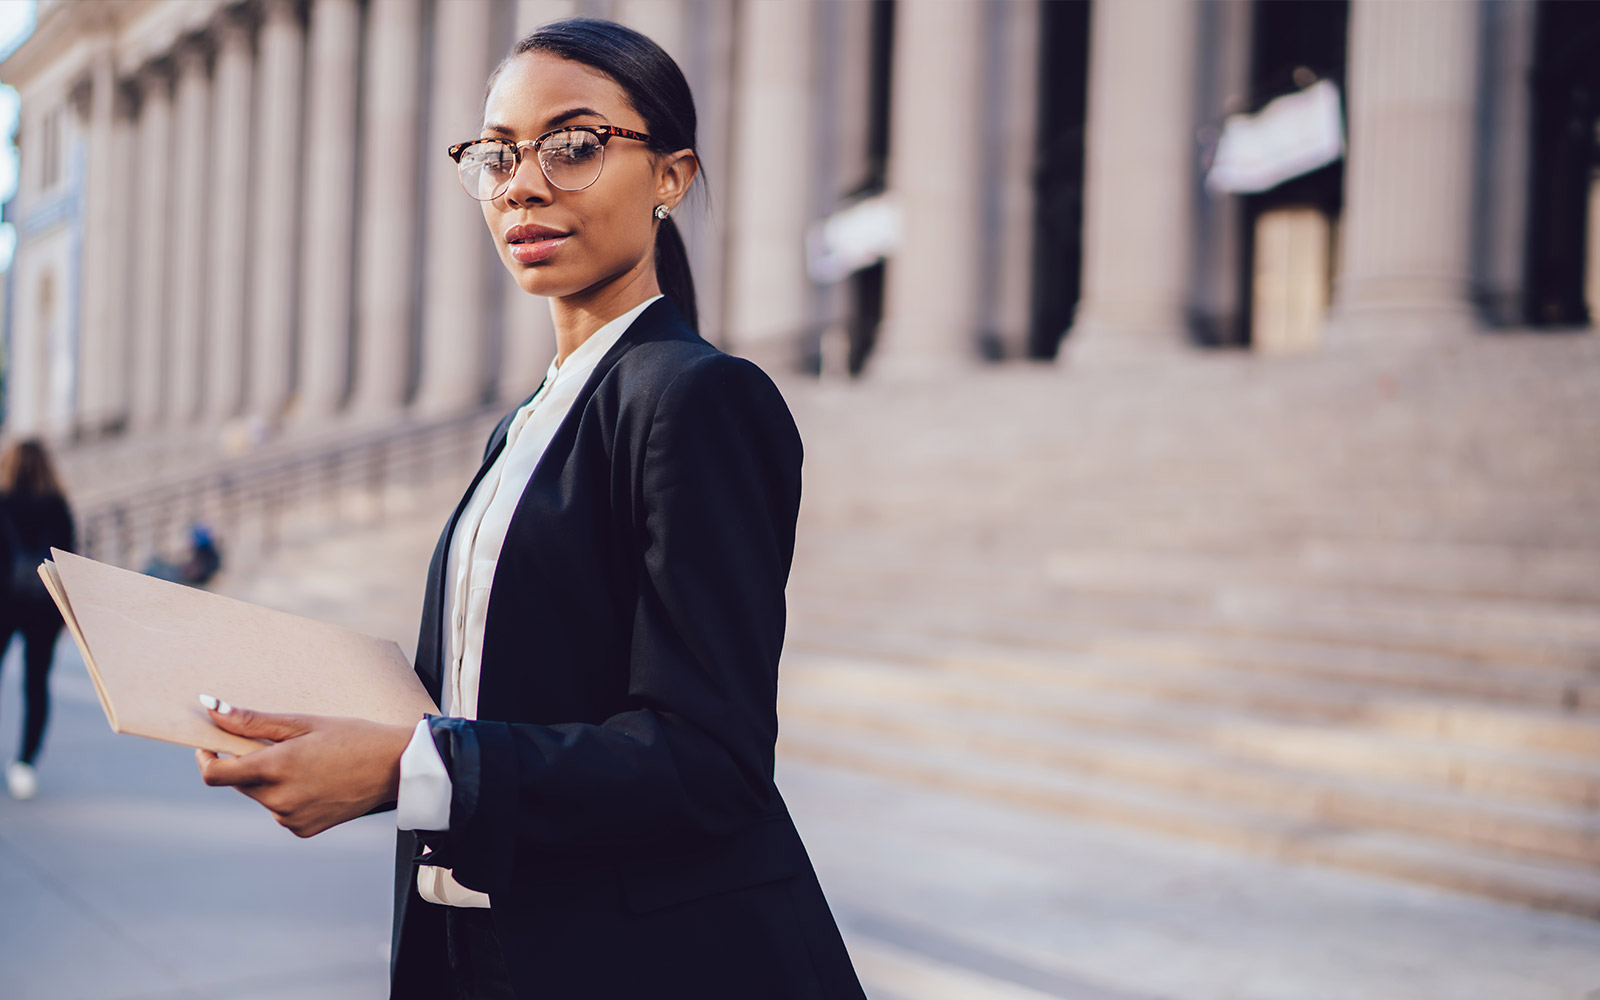 Woman criminal justice professional outside of legal proceedings